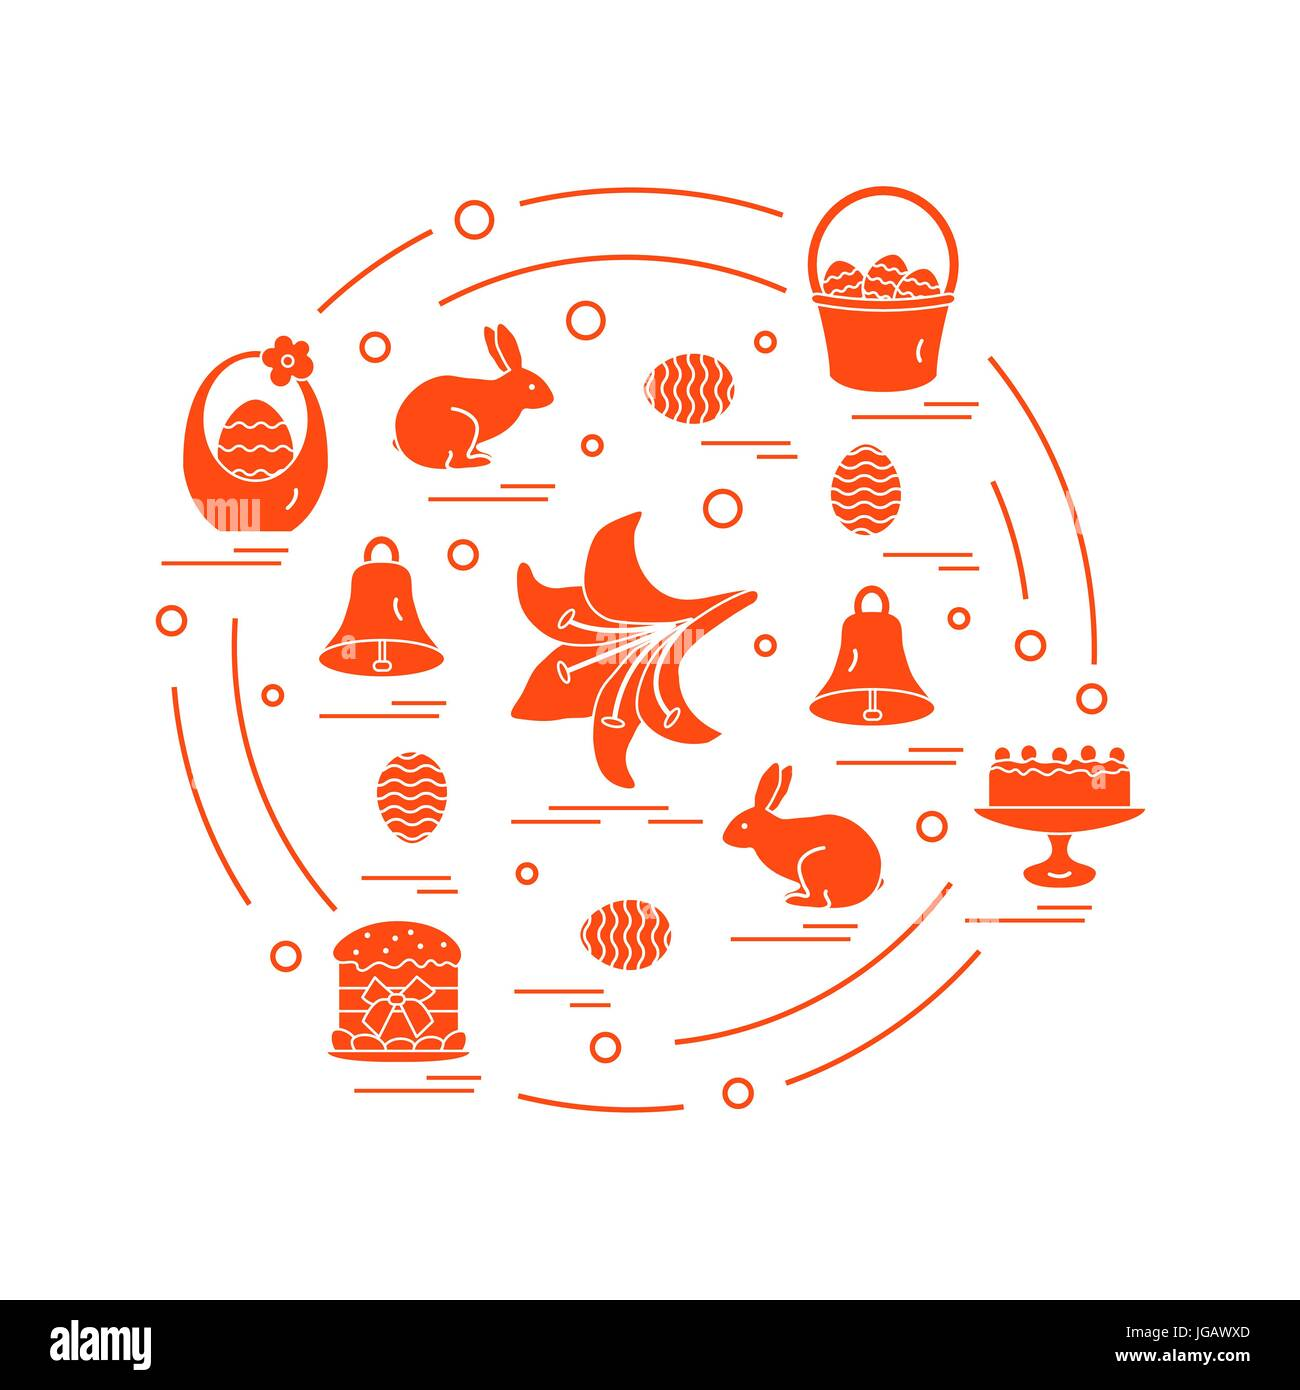 Cute Vector Illustration With Different Symbols For Easter Arranged